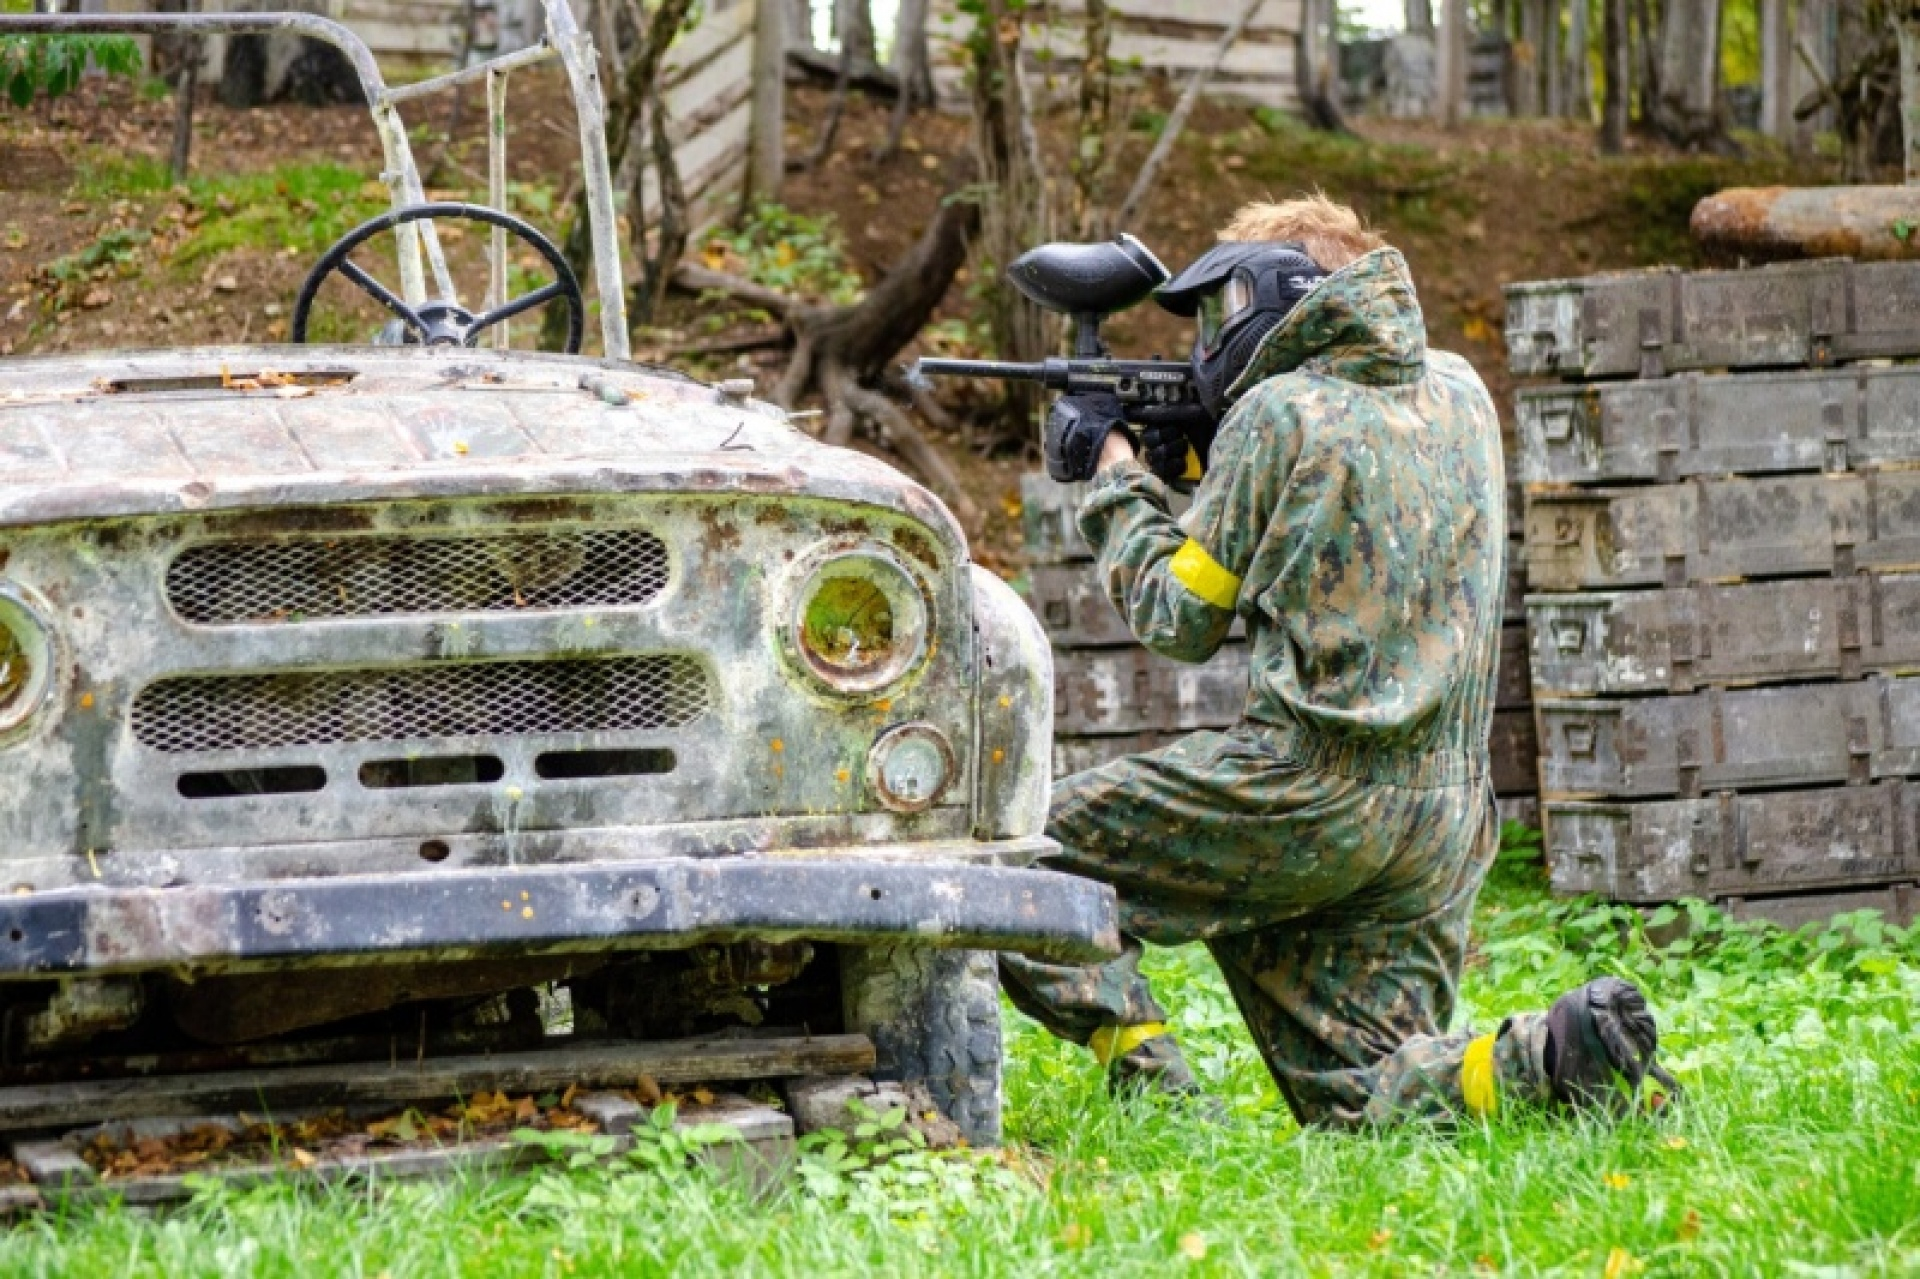 a person playing paintball